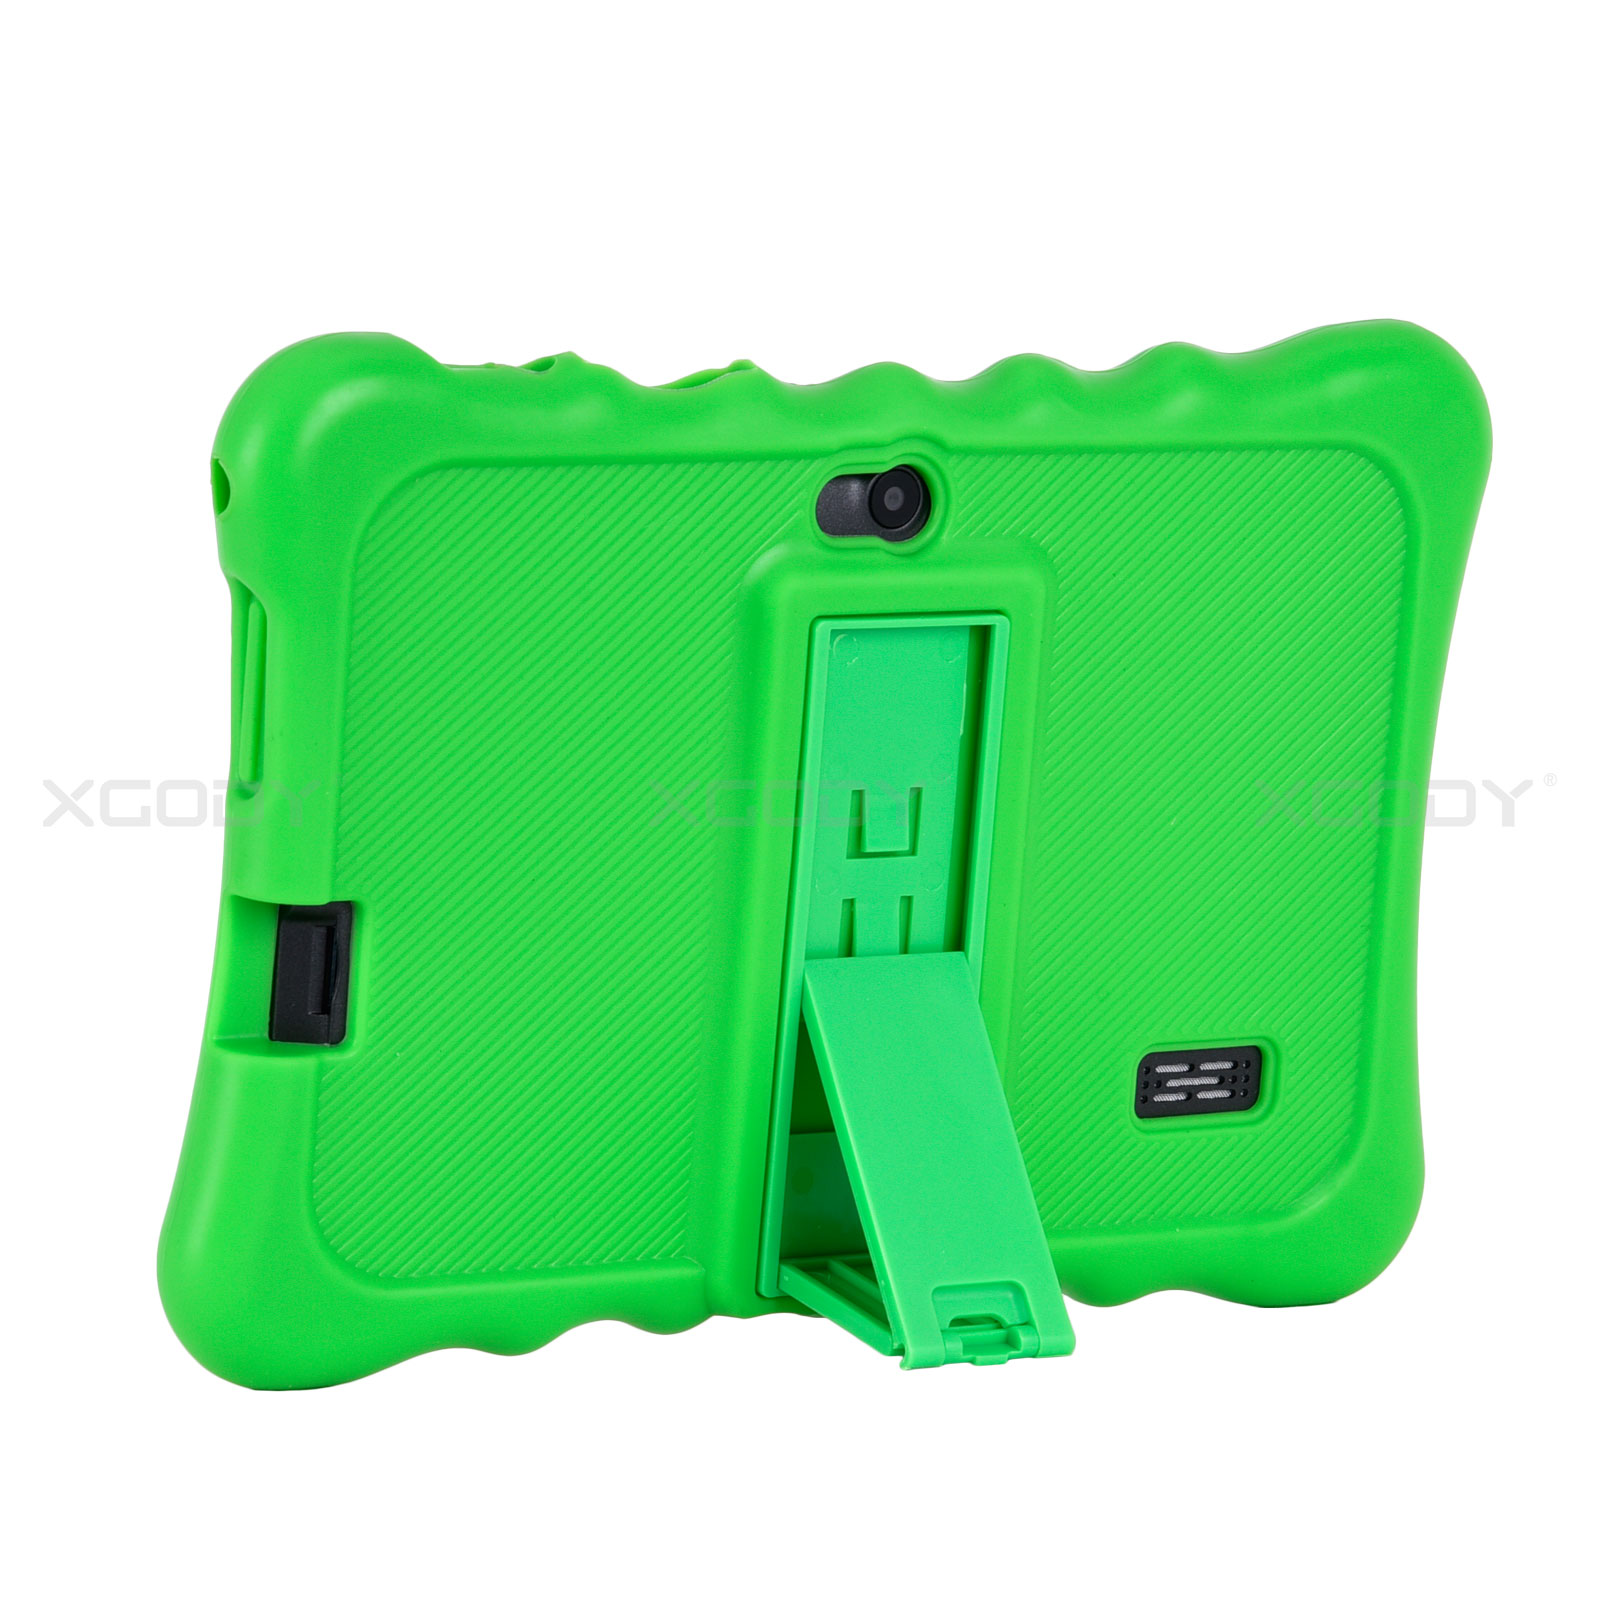 miniature 18 - For 7 inch Tablet Silicone Tablet Case Waterproof Shockproof Stand Cheap 4 Color